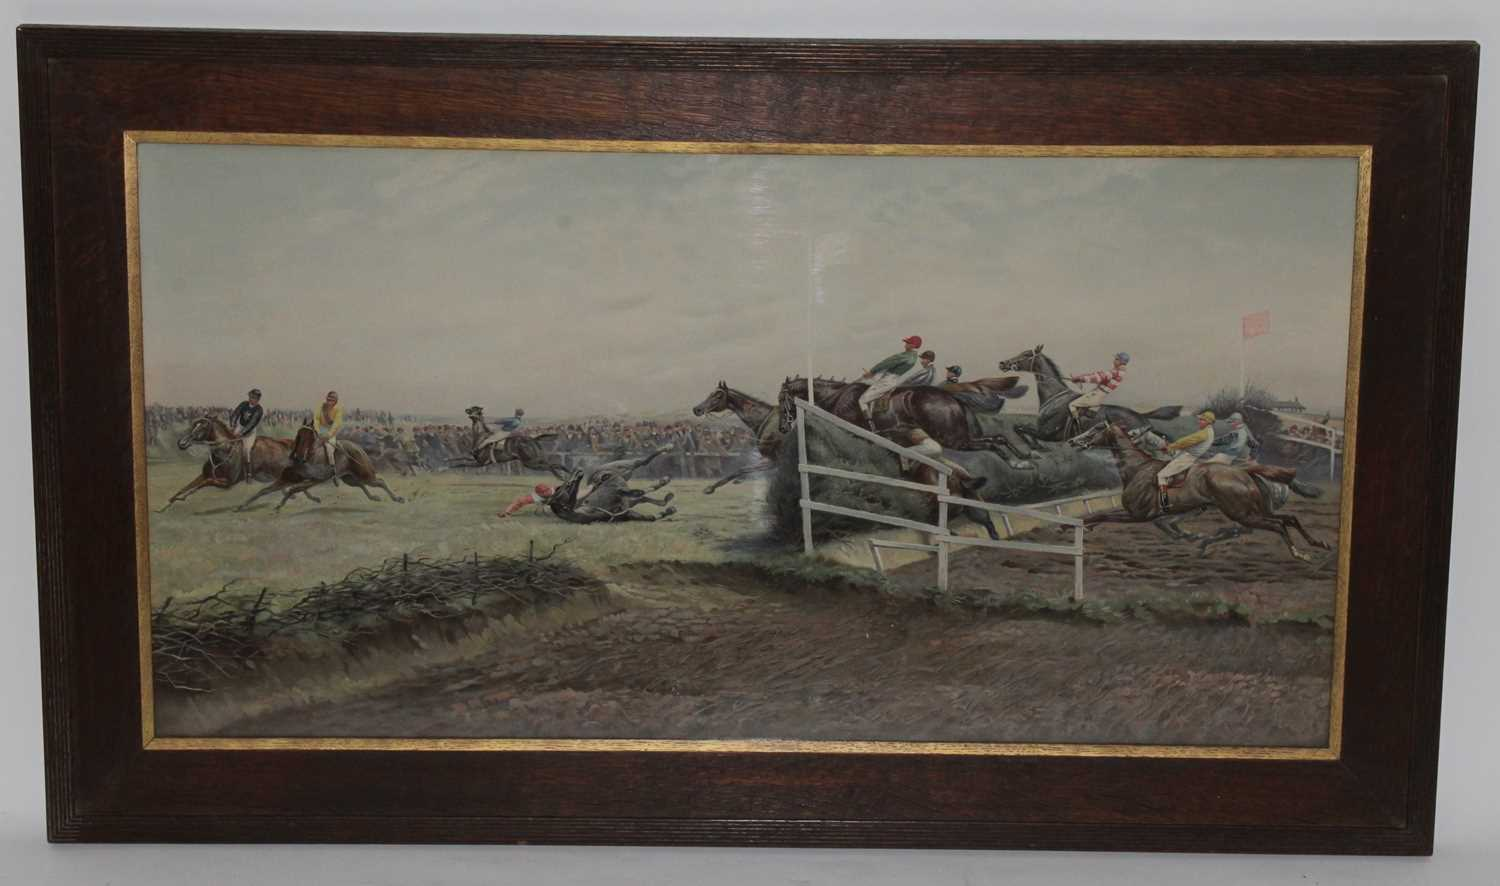 After Major Geoffrey Douglas Giles (1857-1941), The Canal Turn, Grand National Aintree,